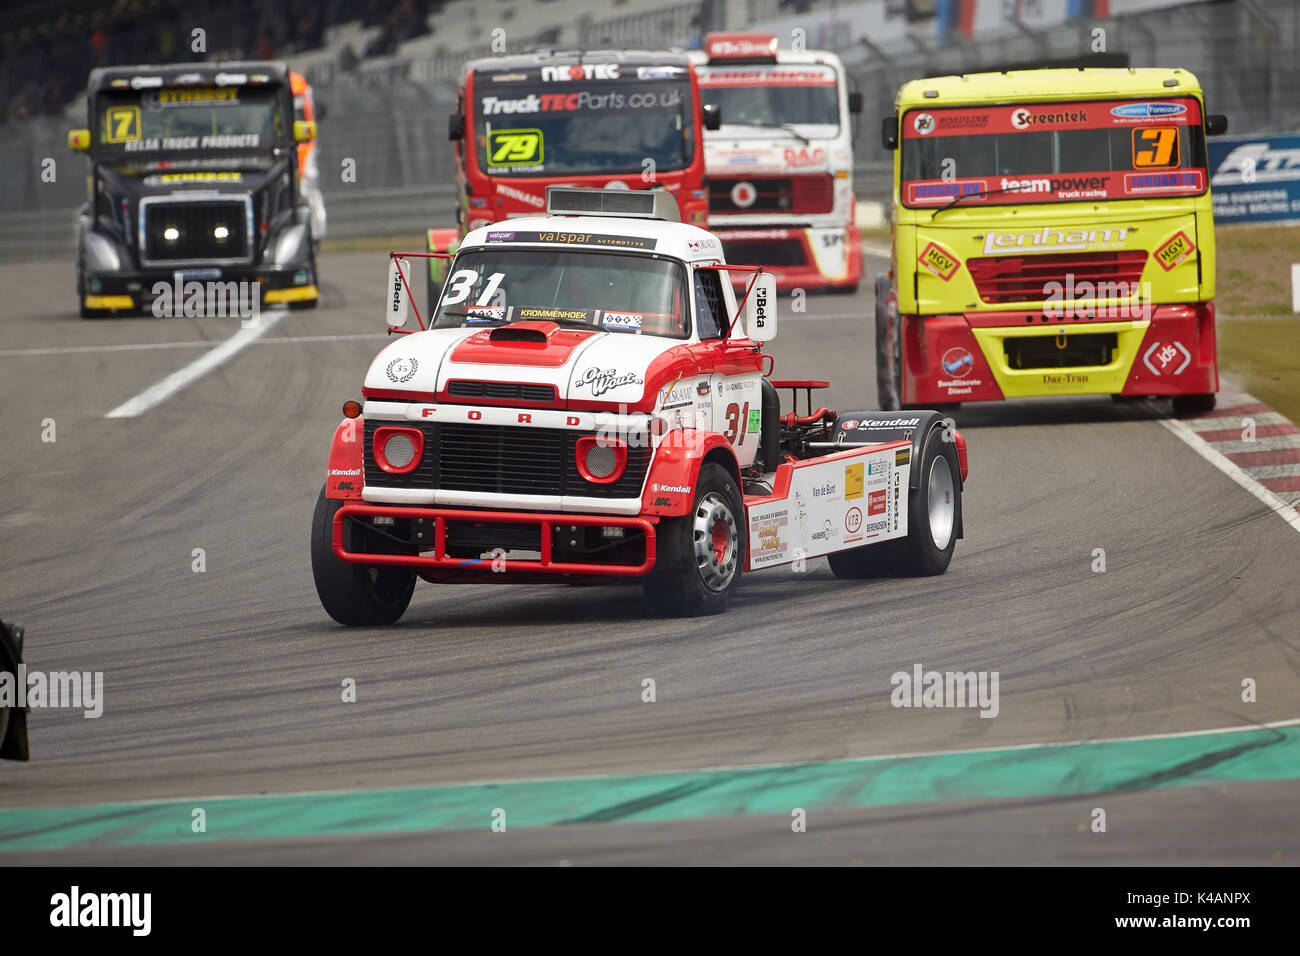 Adac Truck Grand Prix 2017 At The Nürburgring Race Track 1st Race